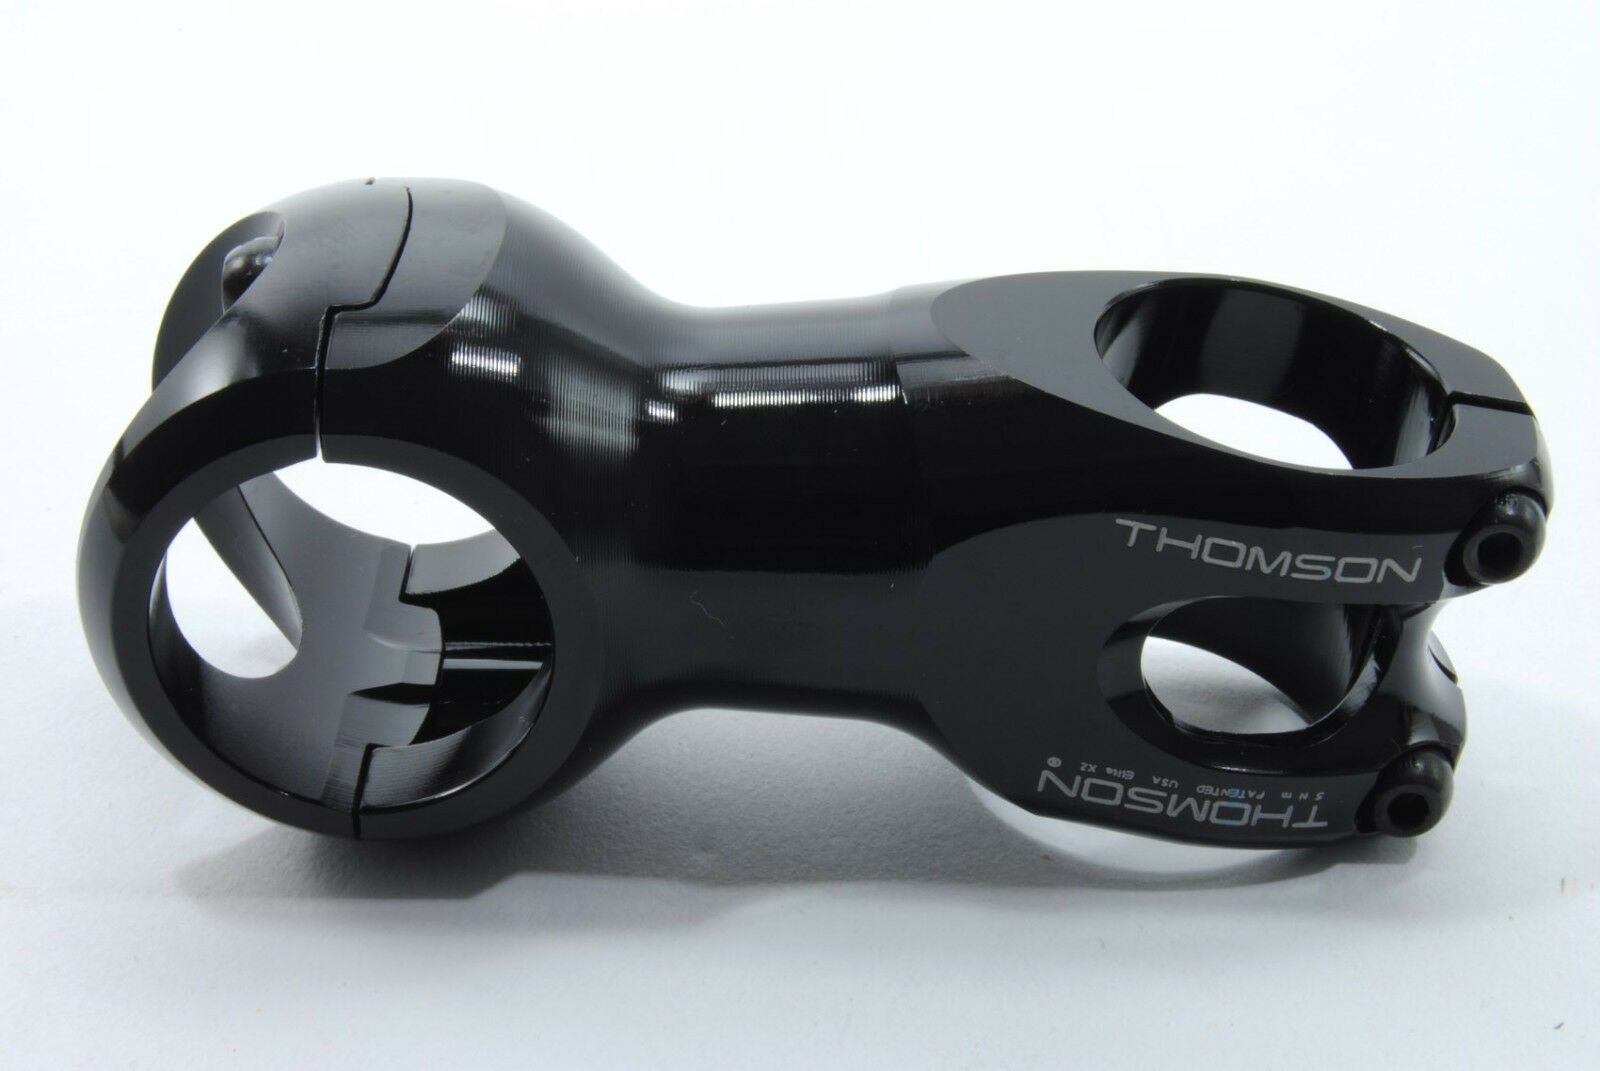 Thomson Elite X2 Bicycle Stem 70mm 31.8mm SM-E151